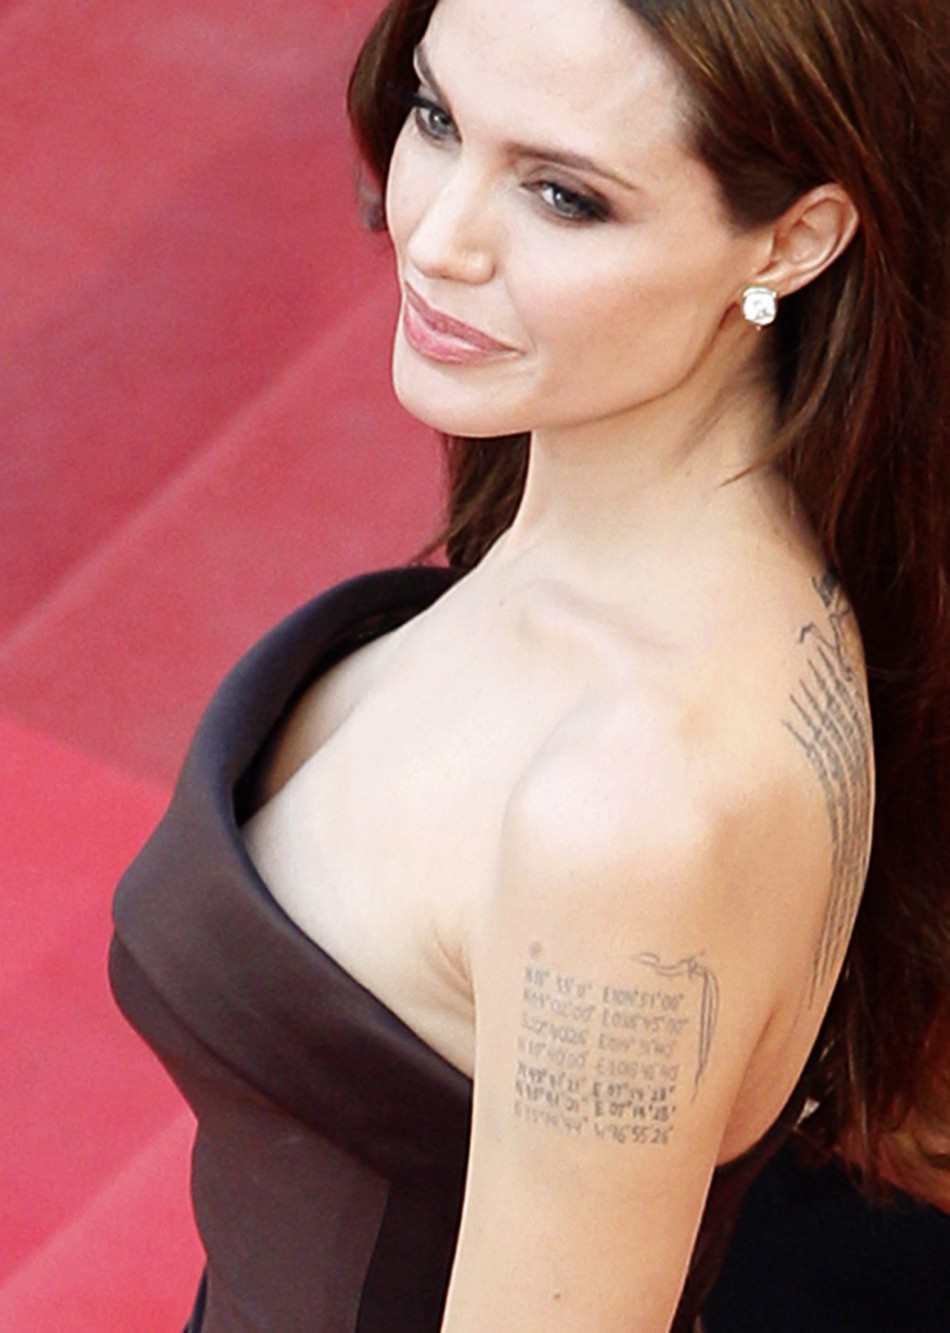 "In the dossier, among the names of 150 people includes Angelina Jolie, J.K. Rowling, Parents of ""Harry Potter"" actor Daniel Radcliffe, Charlotte Church, Steve Coogan, Eric Clapton, Mick Jagger, George Michael, Simon Cowell, Sir Paul McCartney, Jude Law, S"